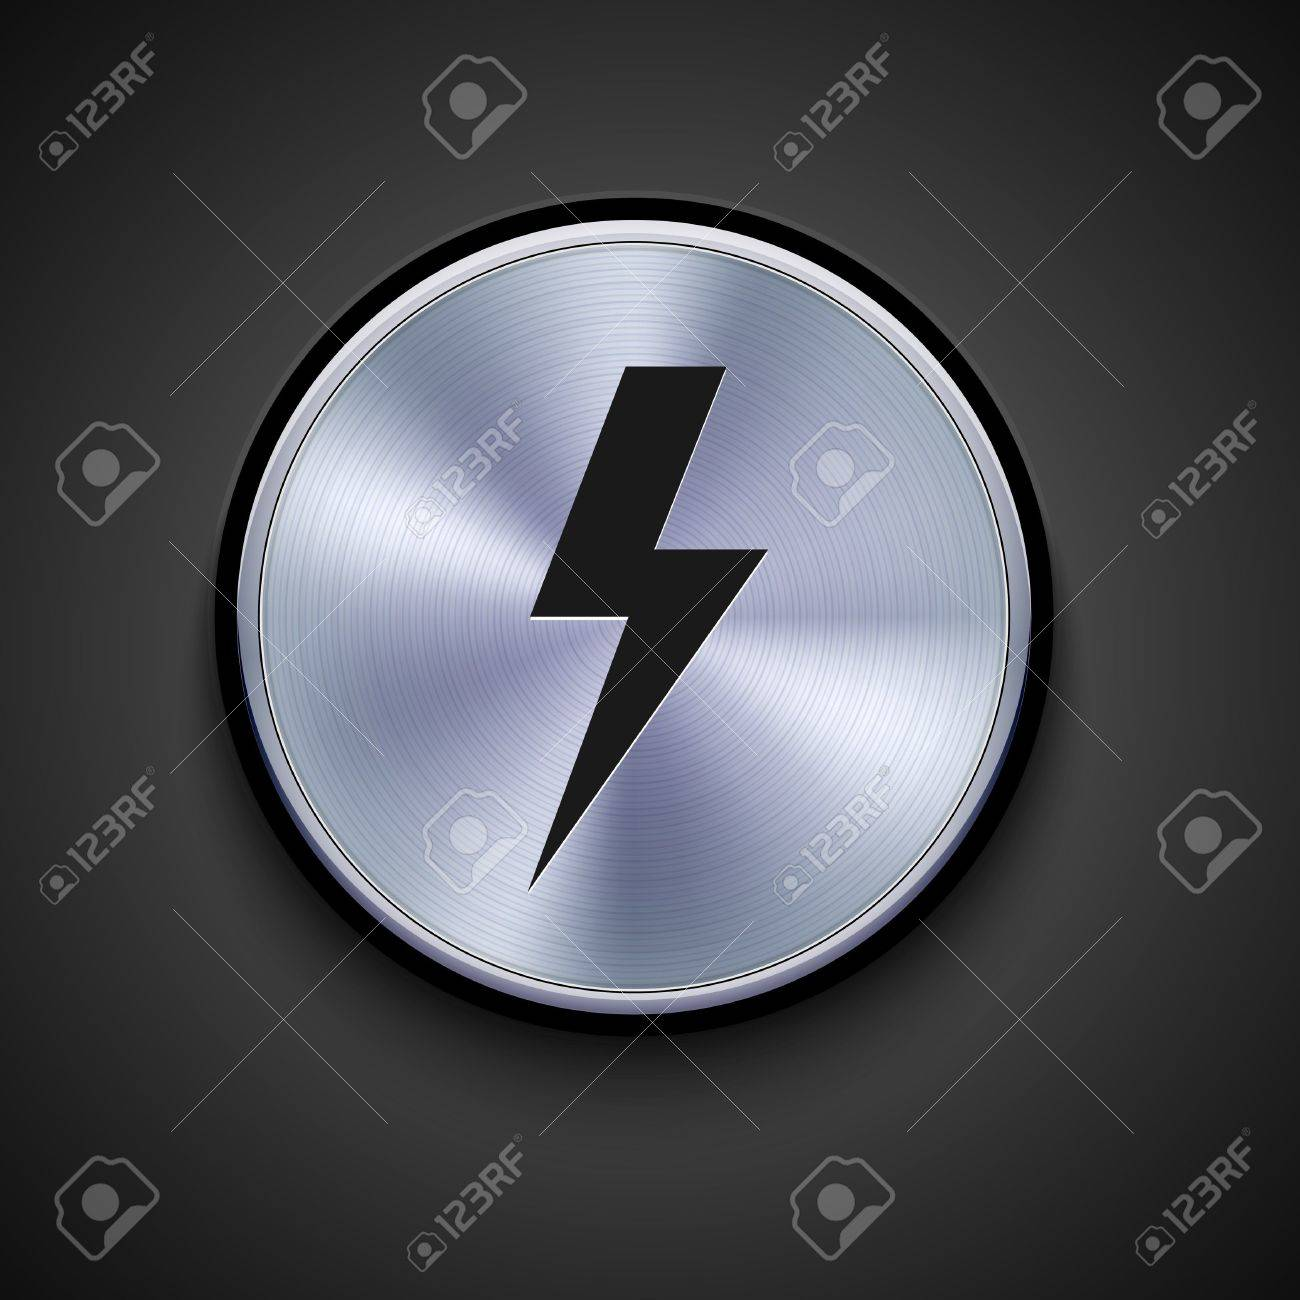 vector metal icon on gray background. Eps10 Stock Vector - 17275336